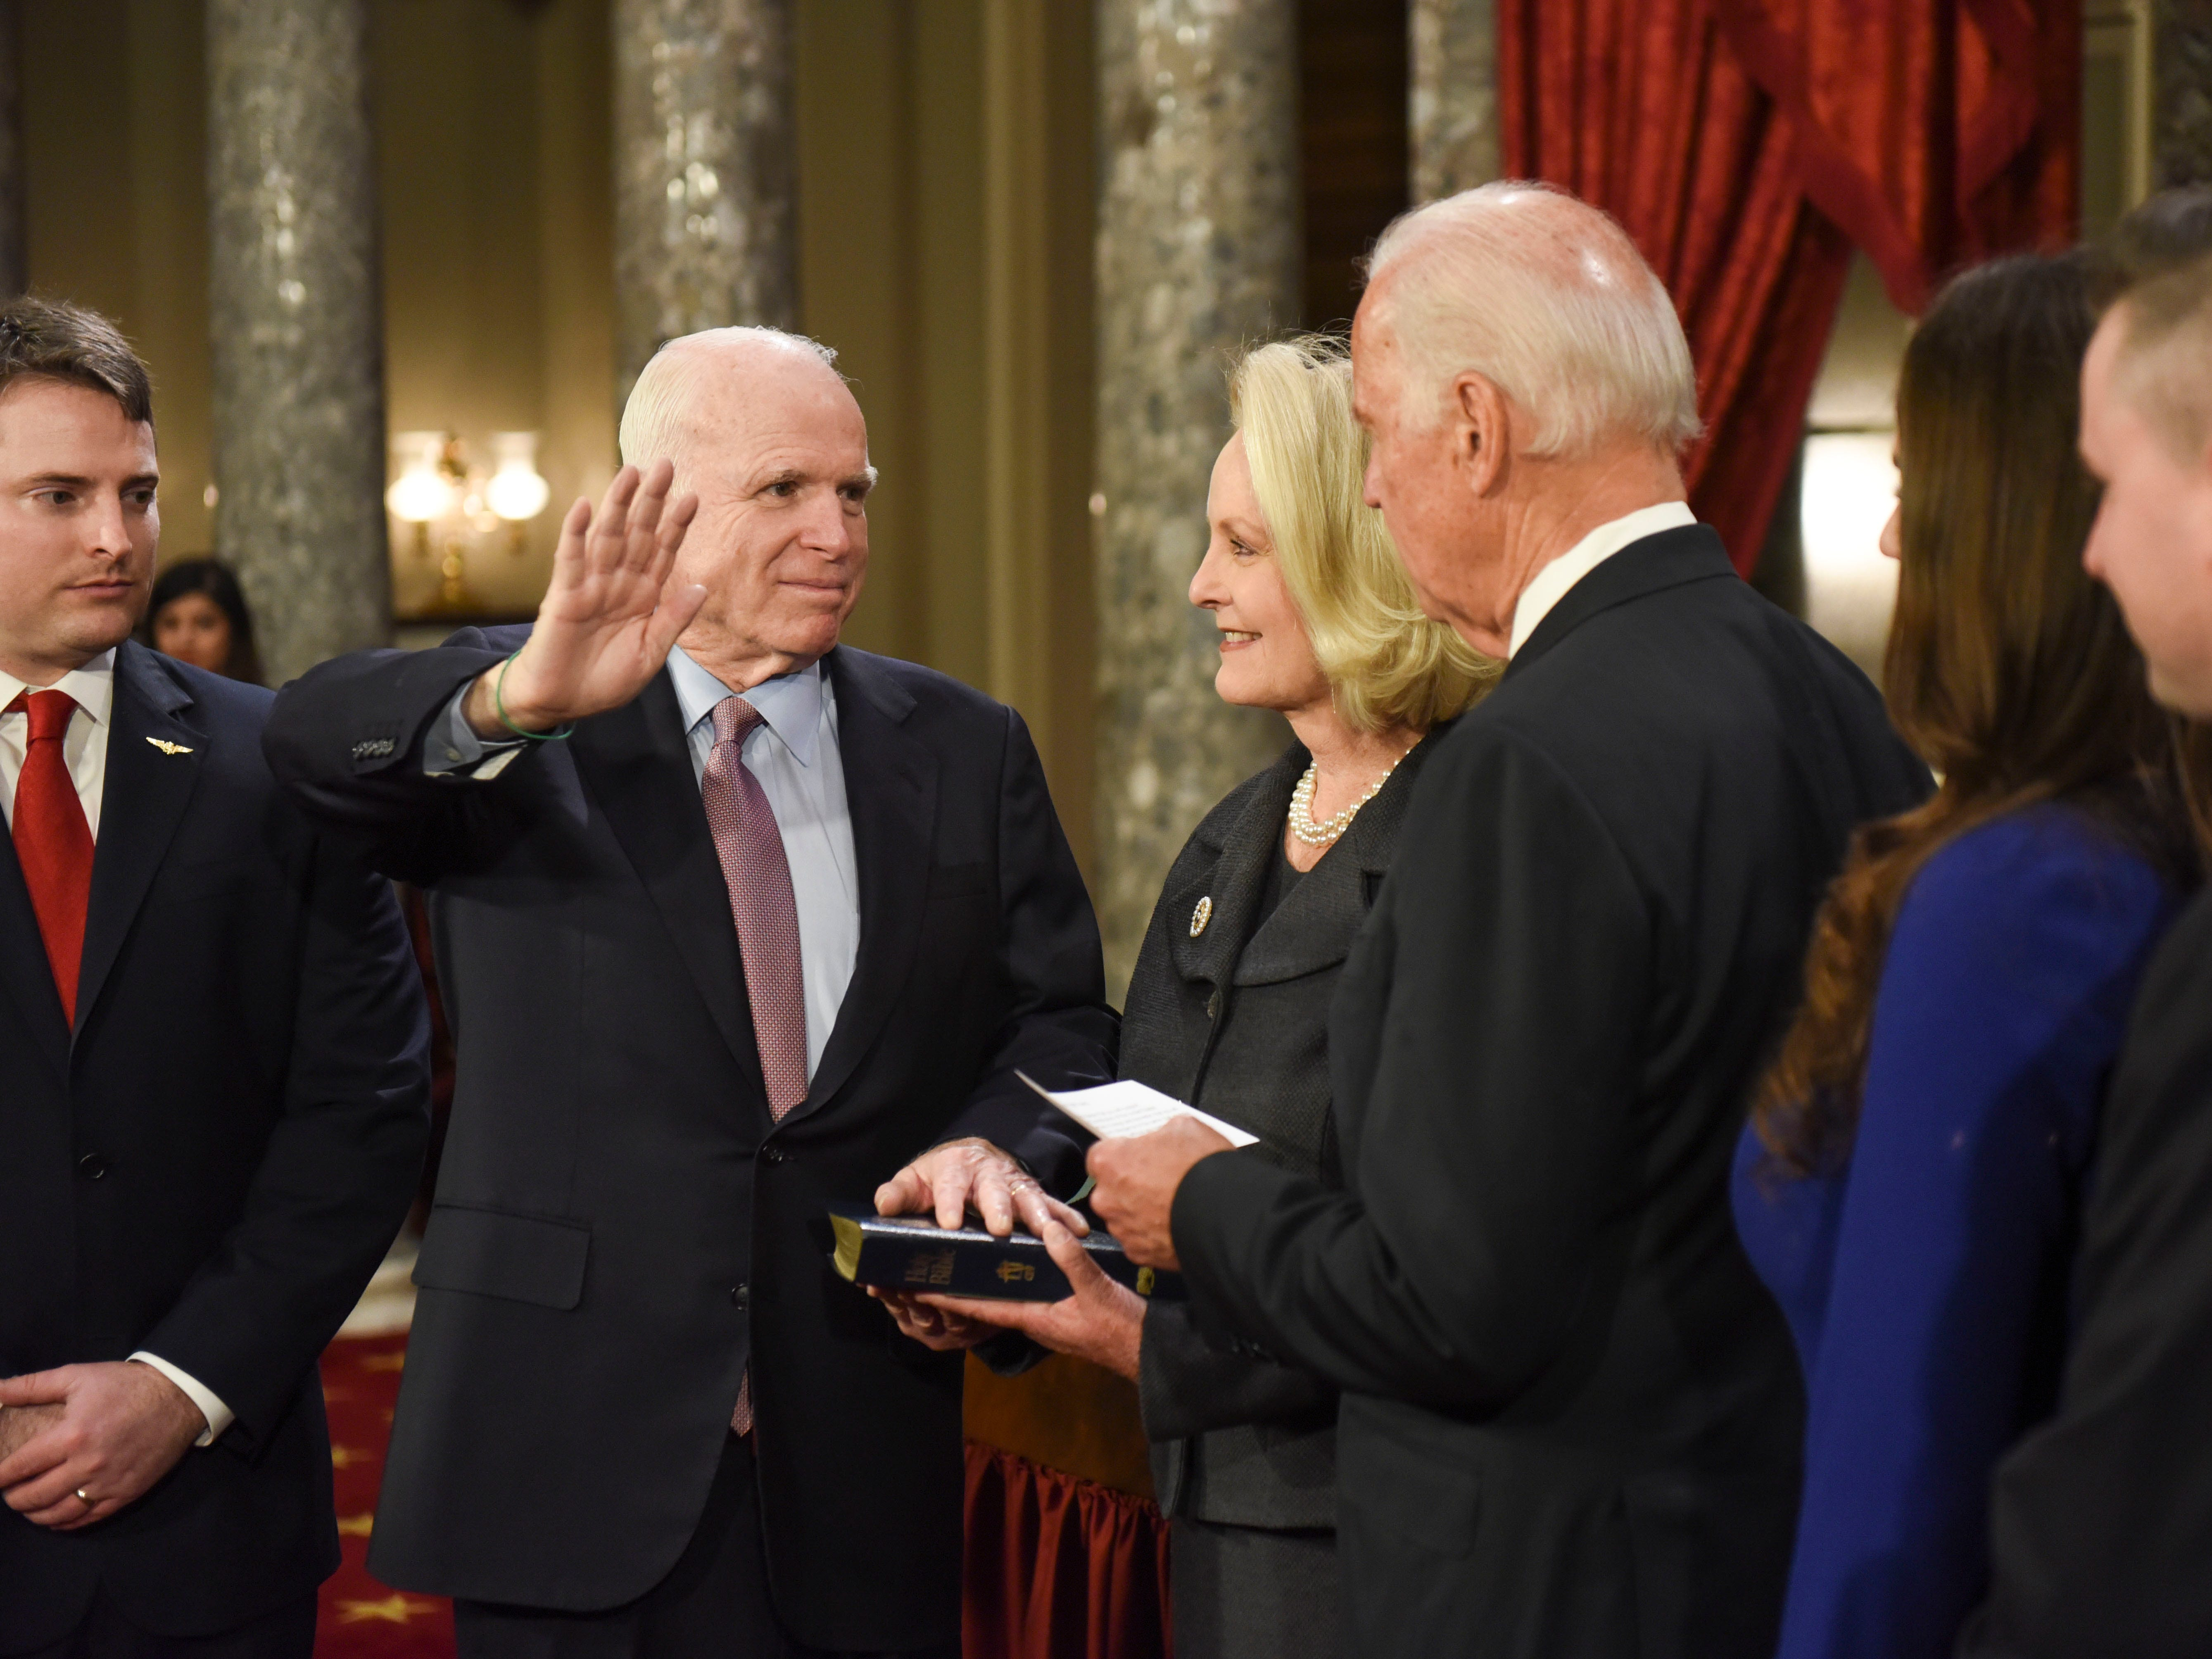 Vice President Joe Biden administers the Senate oath of office to Sen. John McCain, R-Ariz., accompanied by his wife, Cindy McCain, holding bible, and his family look on during a a mock swearing in ceremony in the Old Senate Chamber on Capitol Hill in Washington, Tuesday, Jan. 3, 2017. (AP Photo/Kevin Wolf)